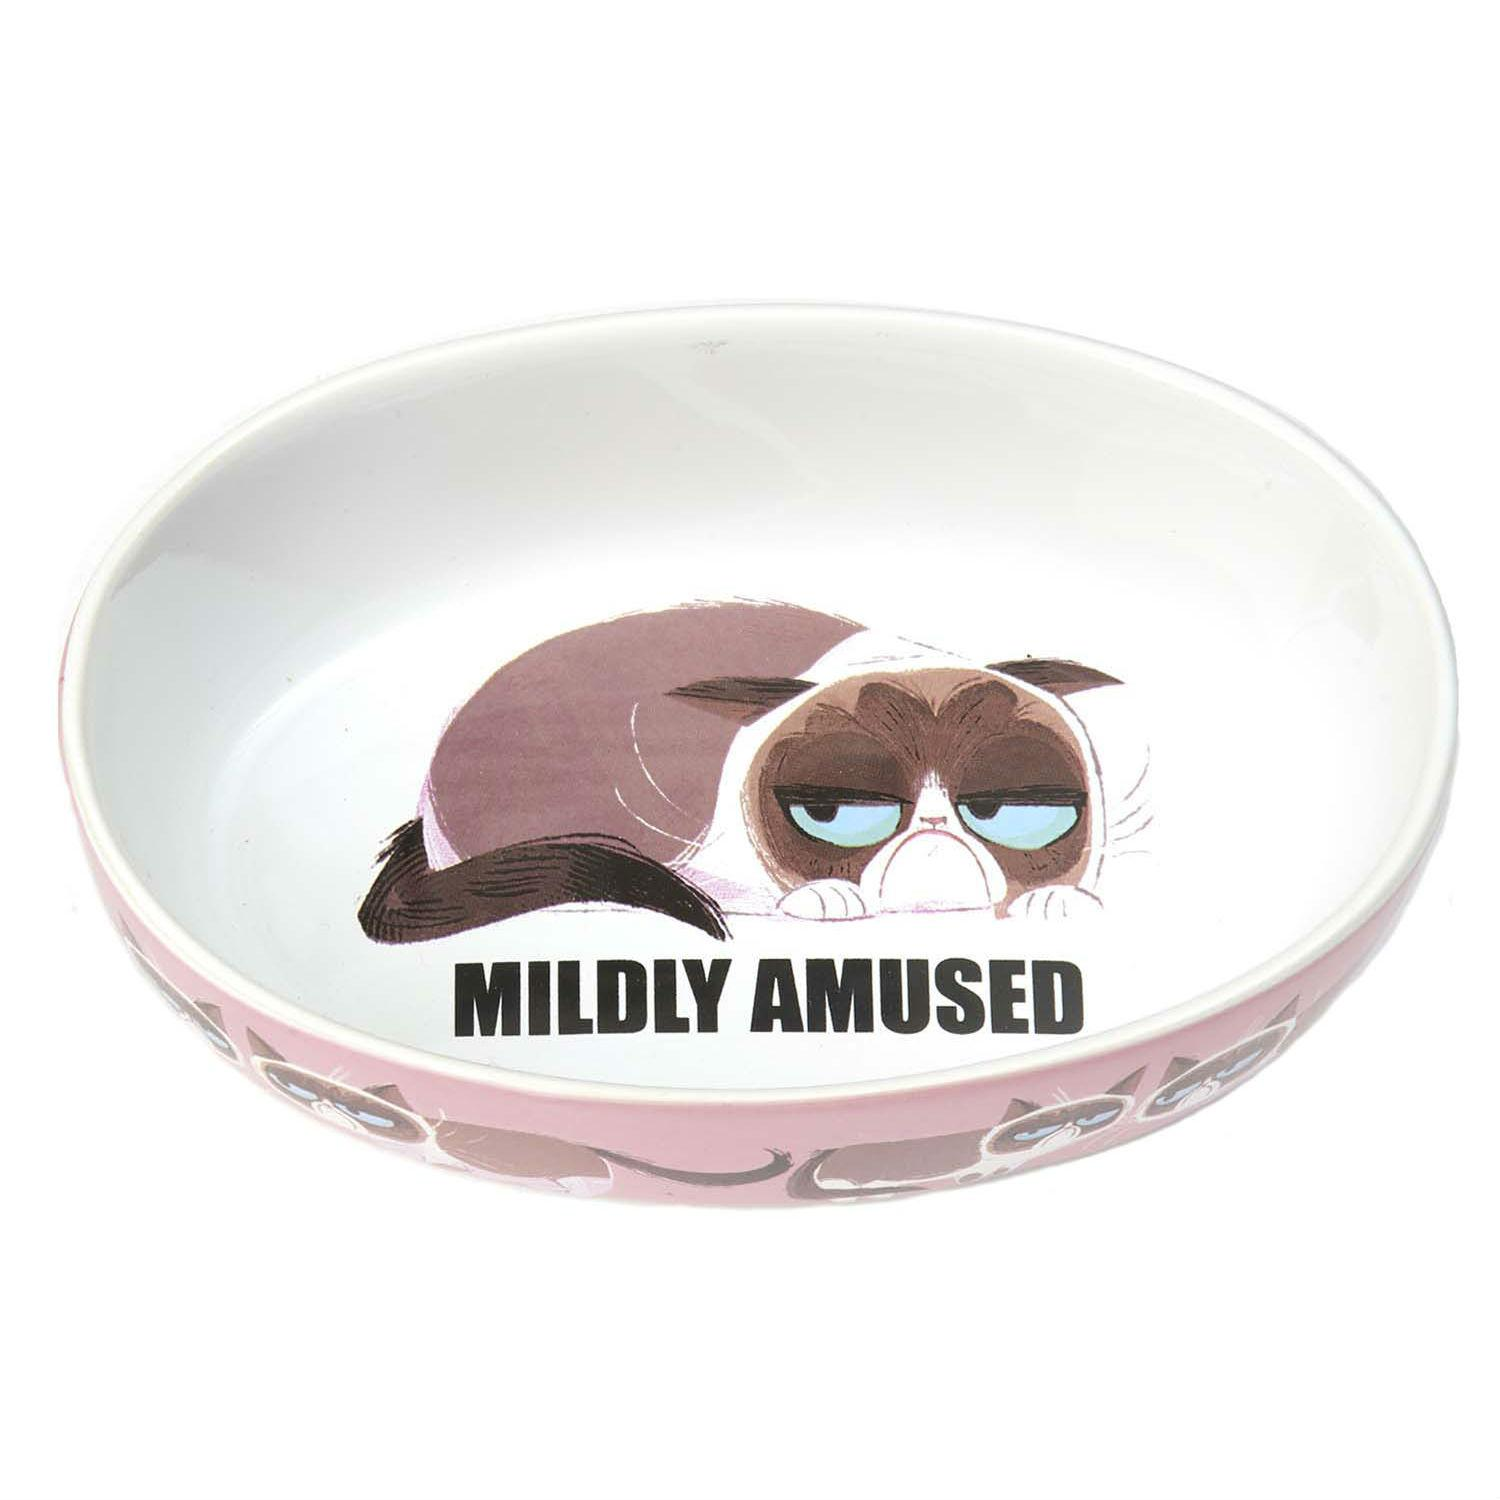 Grumpy Cat Mildly Amused Oval Cat Bowl - Pink